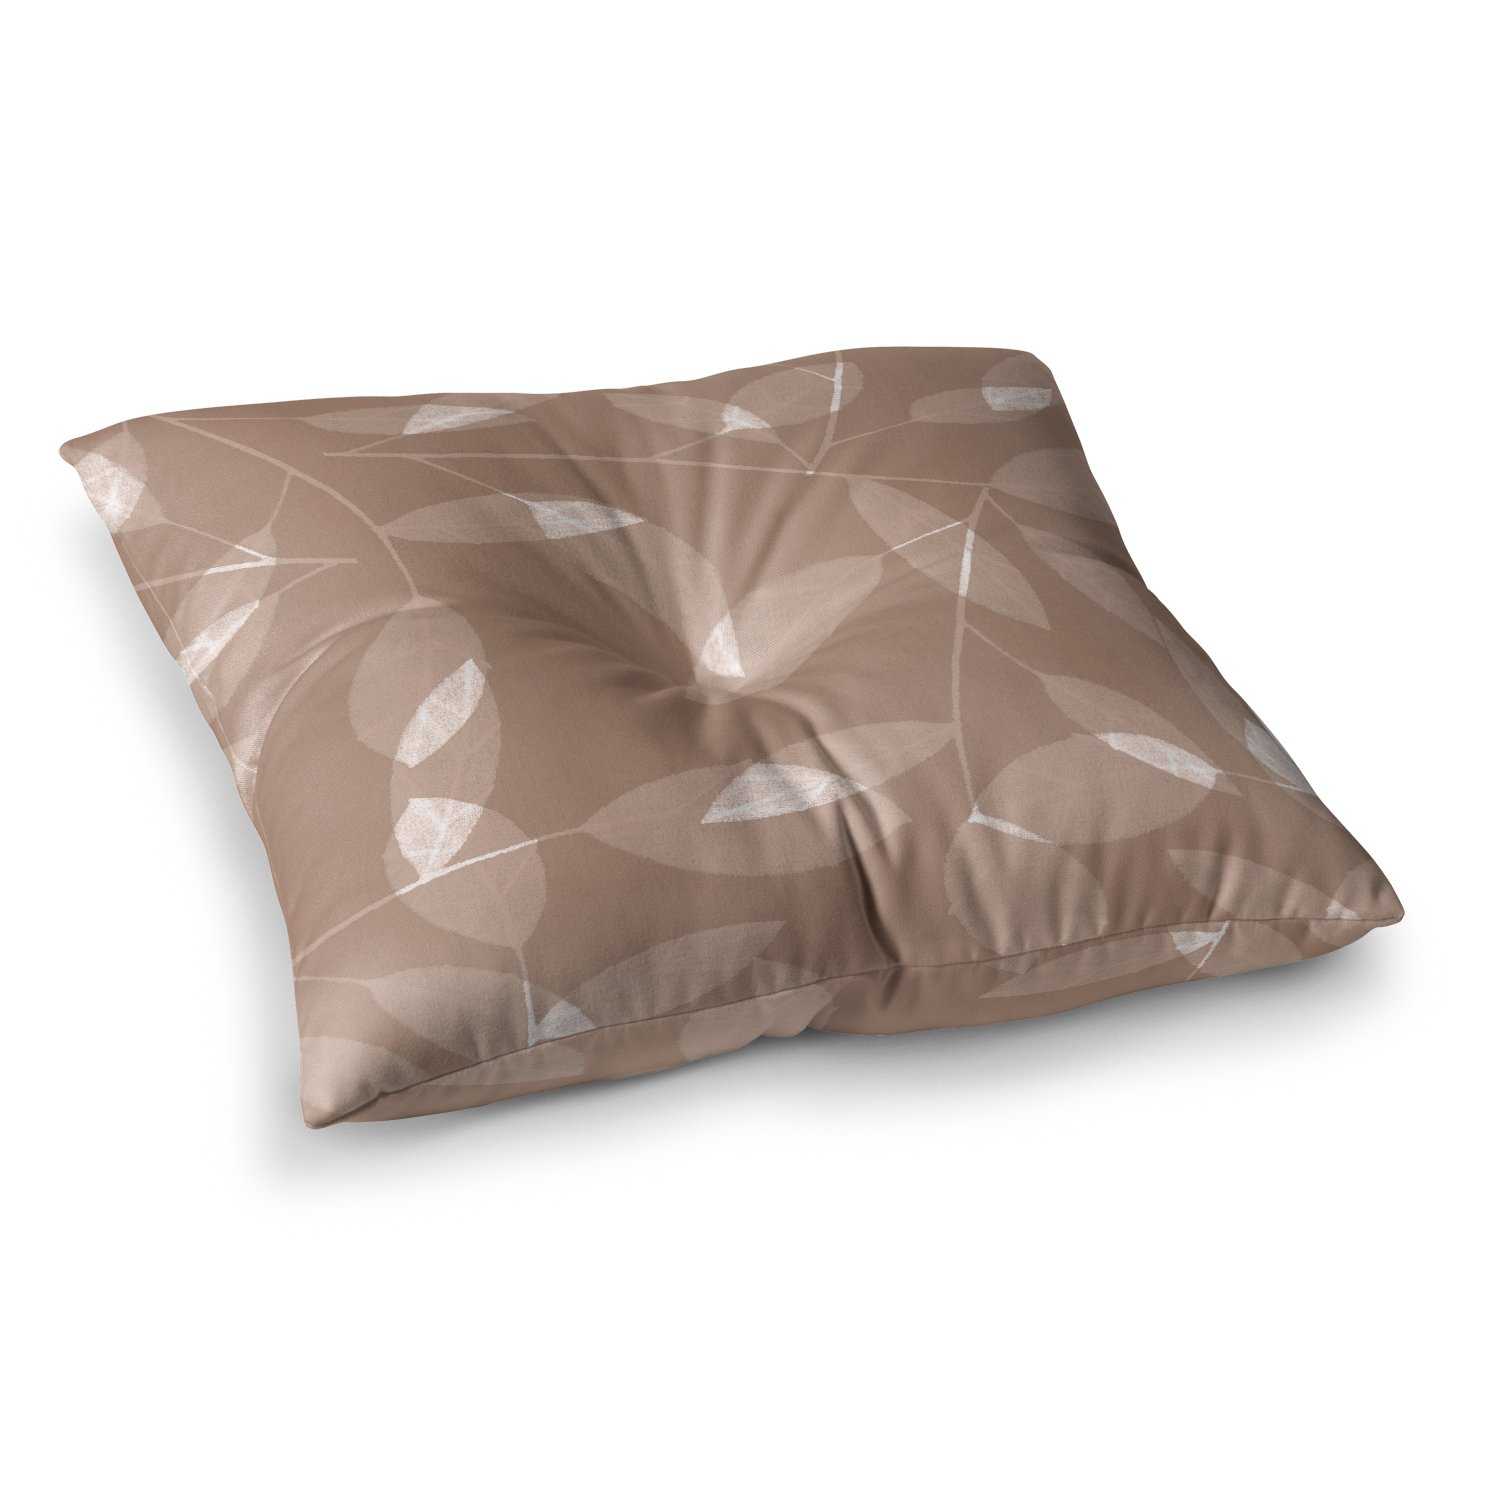 18 by 18 Kess InHouse Alison Coxon Leaf Tawny Brown Beige Throw Pillow